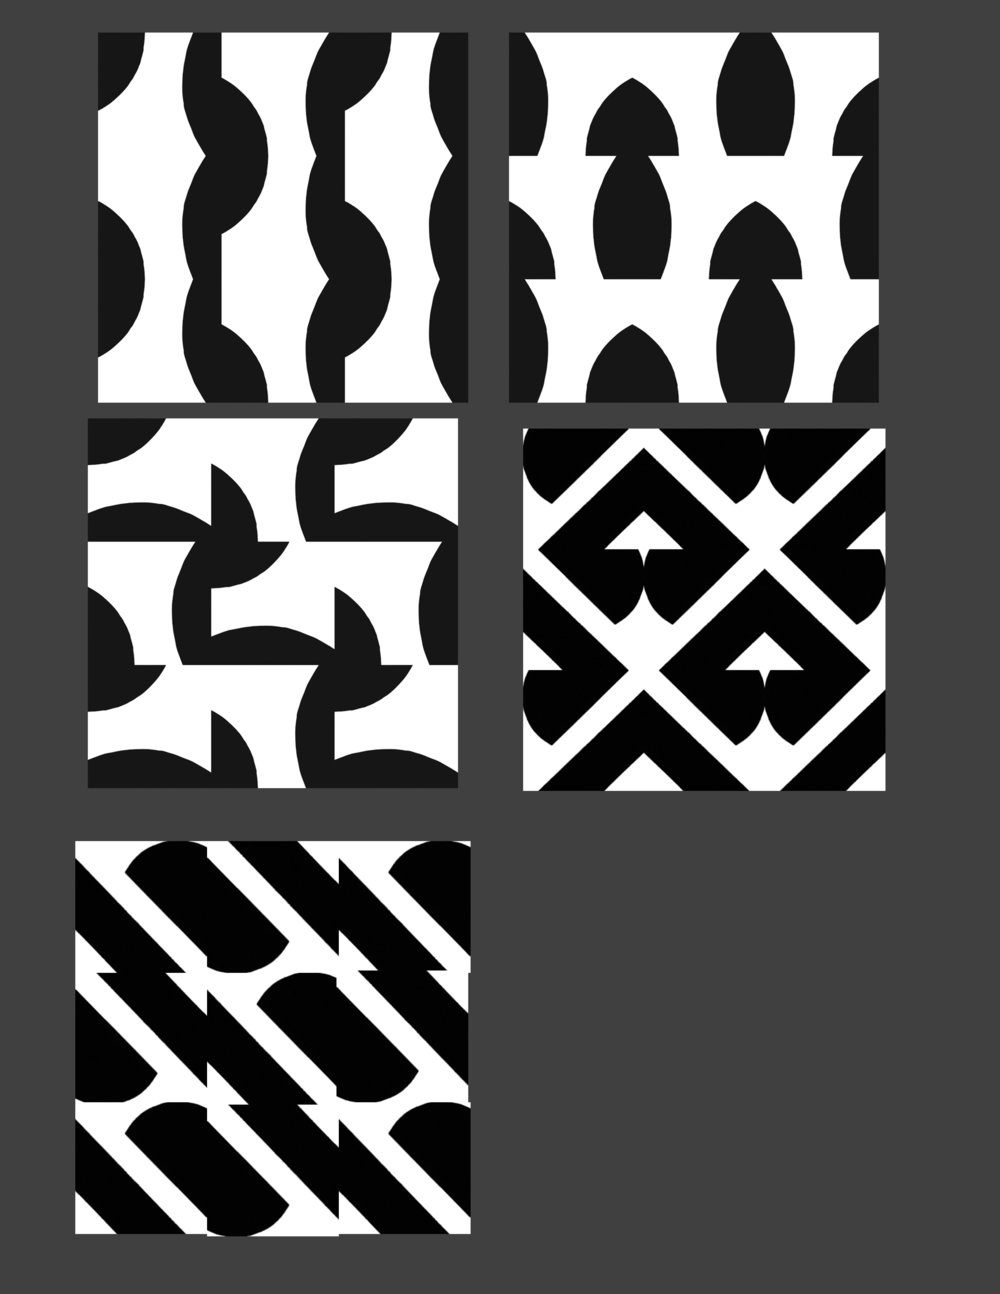 Creating patterns from different cropped parts of the symbol